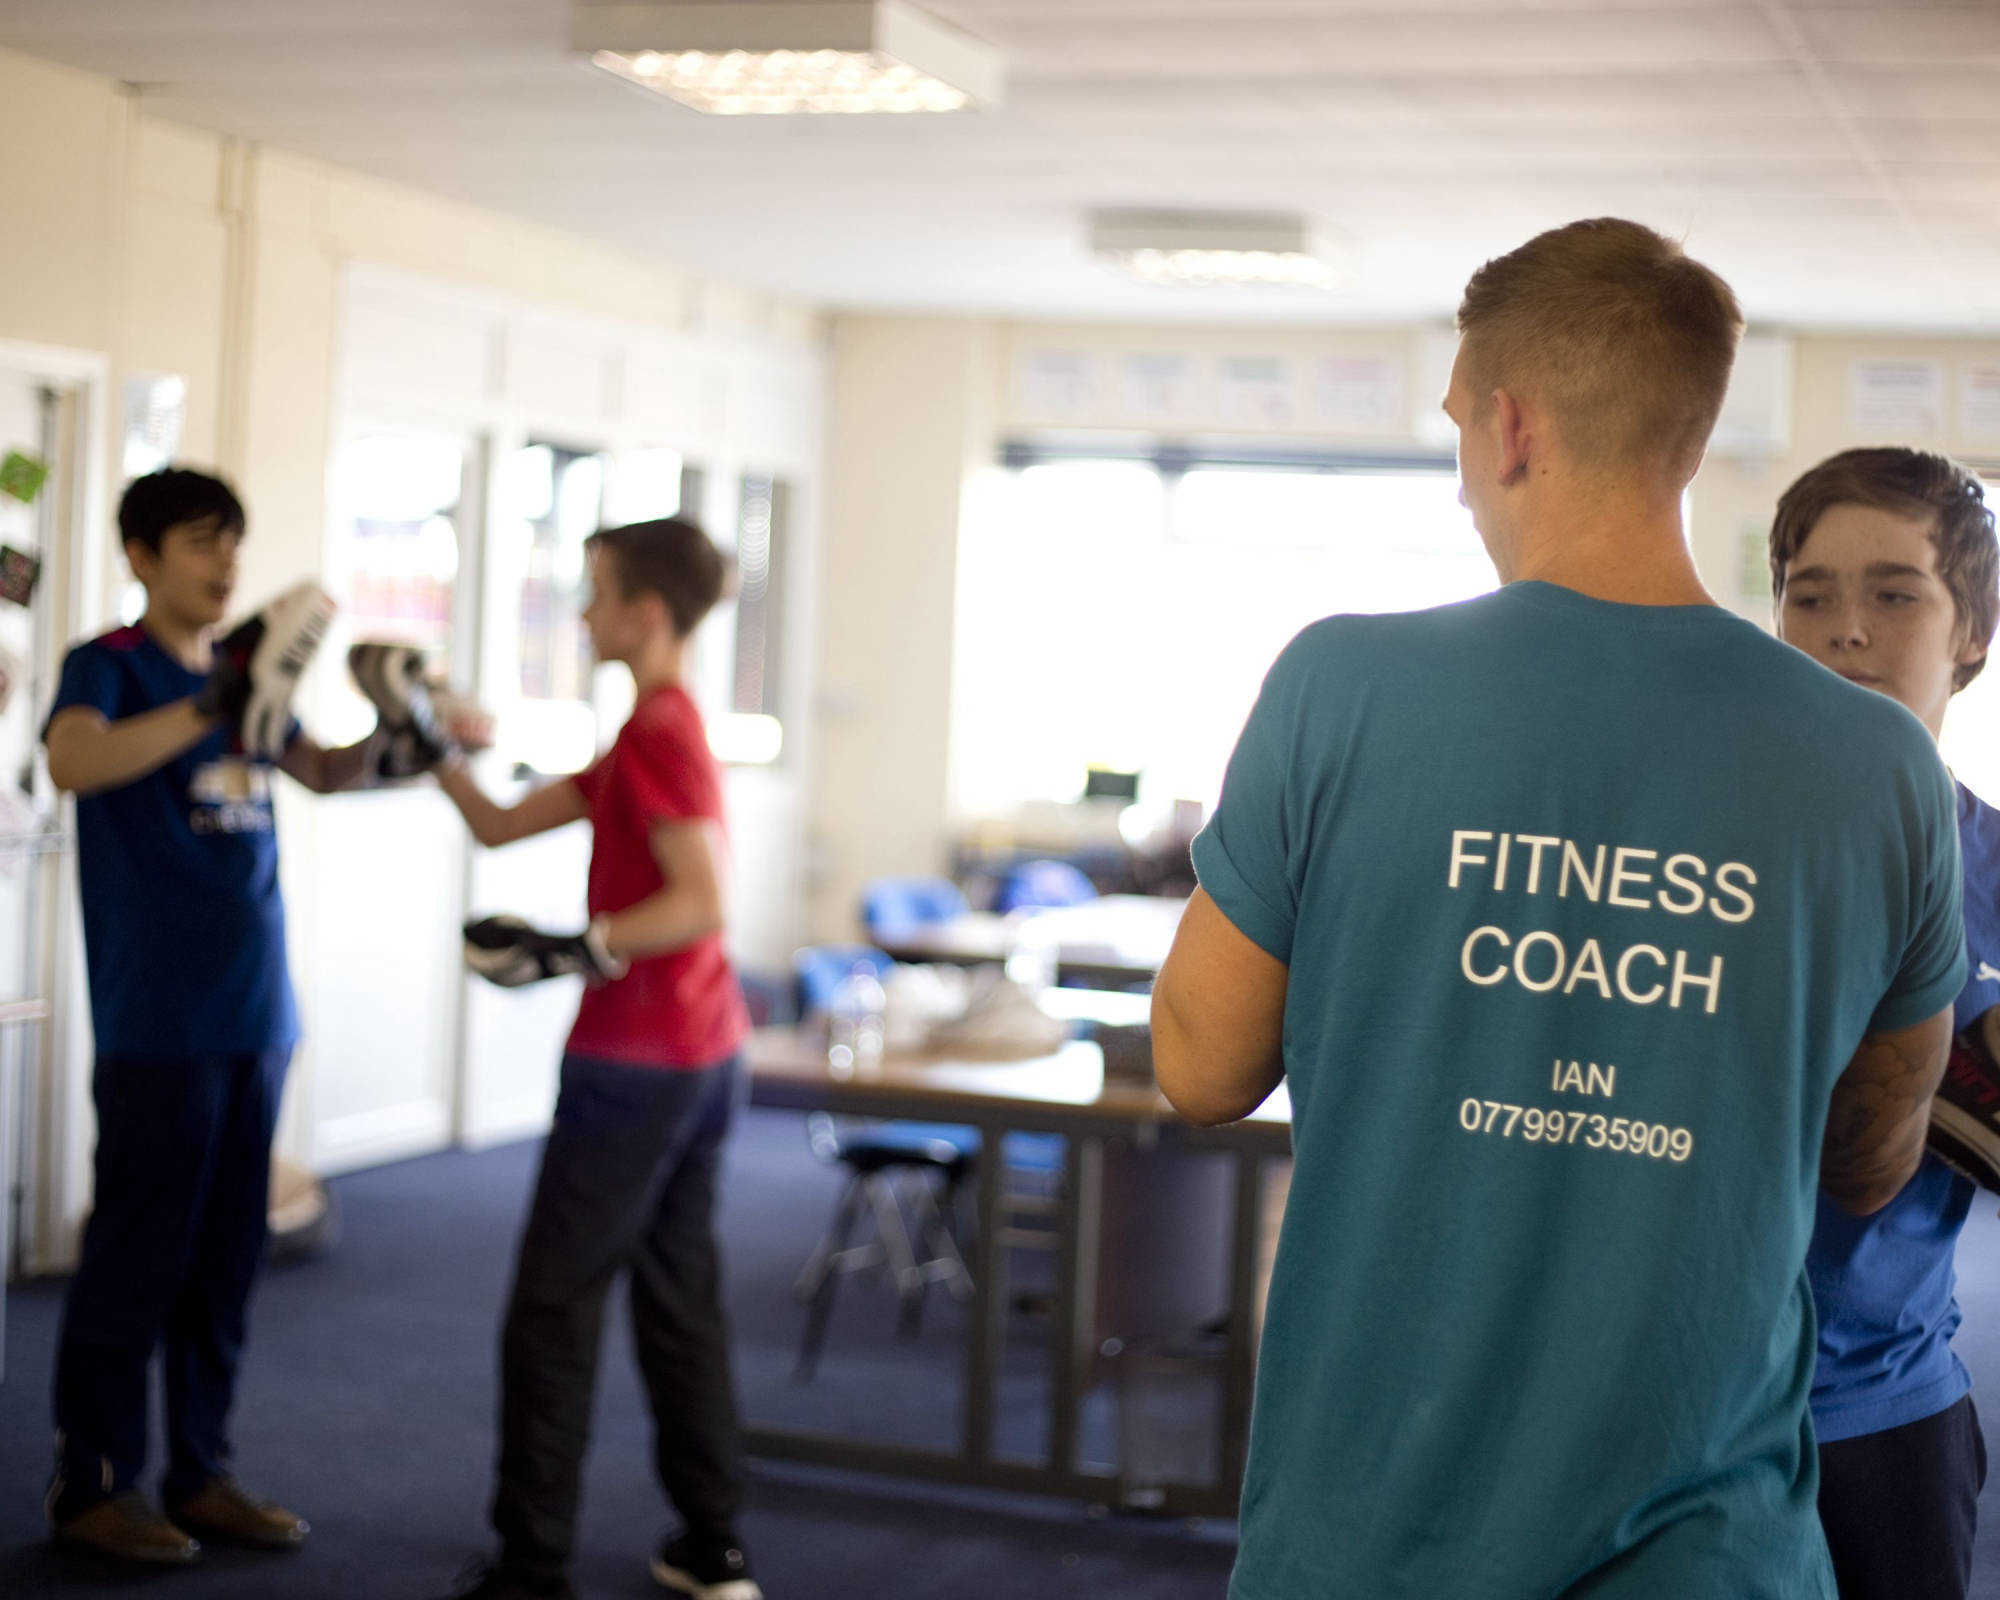 Fitness Coach teaching children